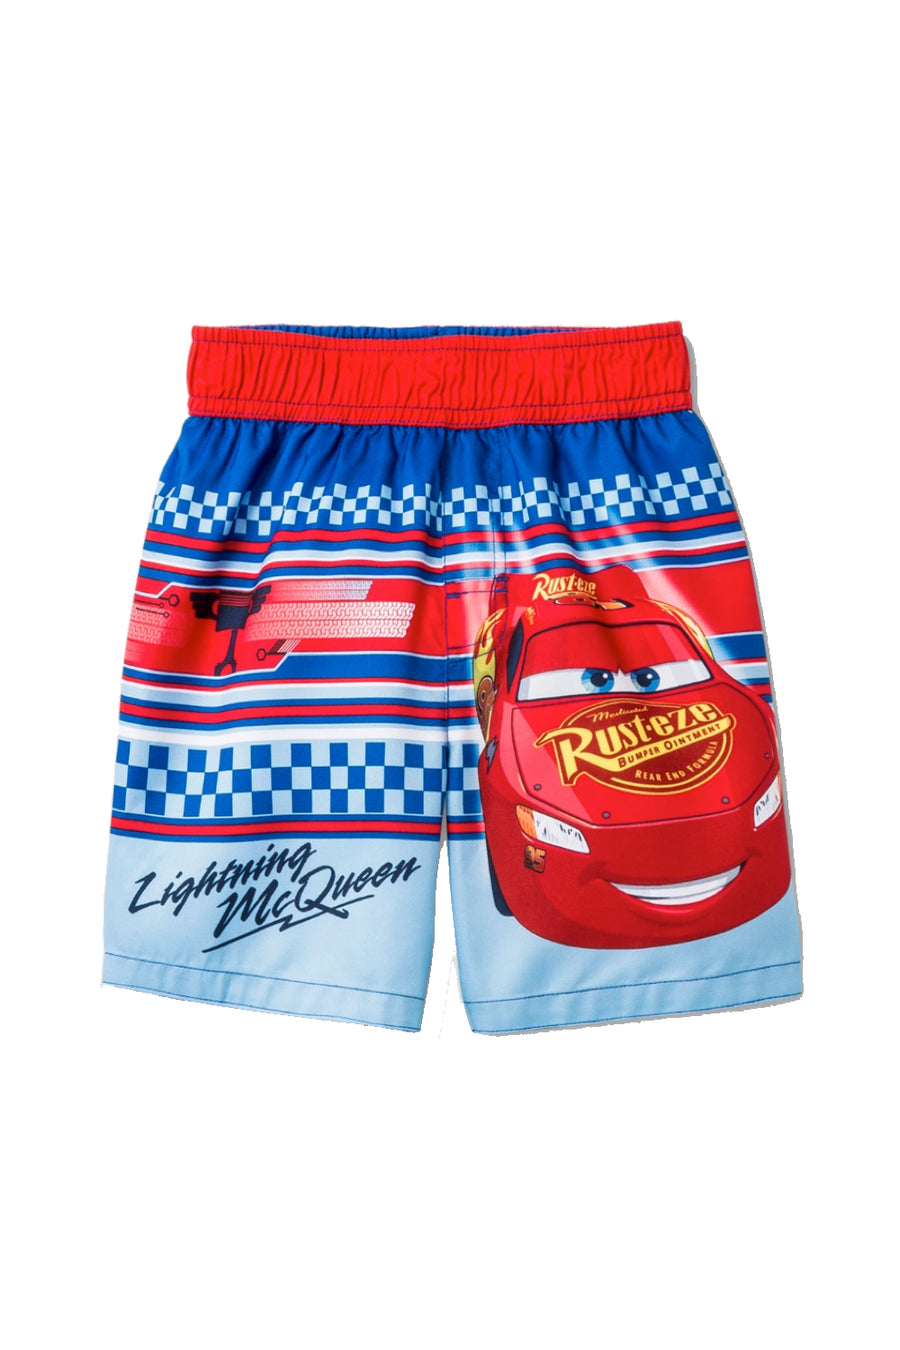 Disney Cars Lightning McQueen Toddler Boys' Swim Trunk - Red/Blue - Sizes 2T, 3T and 4T